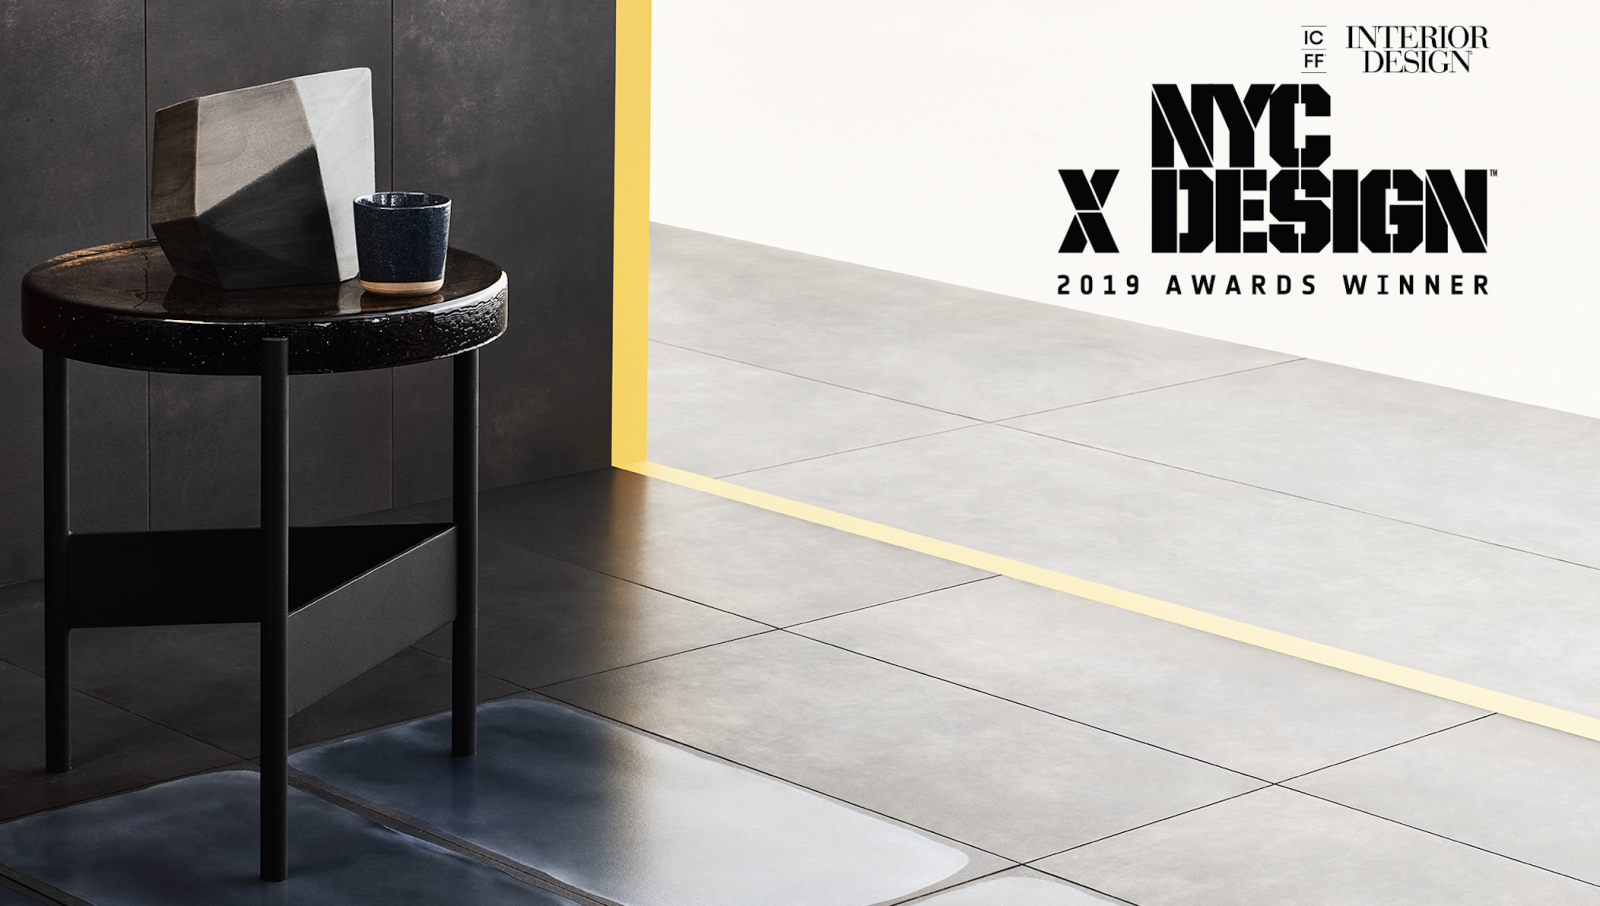 BEST HARD FLOORING PRODUCT A CERAMICHE PIEMME - NYCxDESIGN 2019